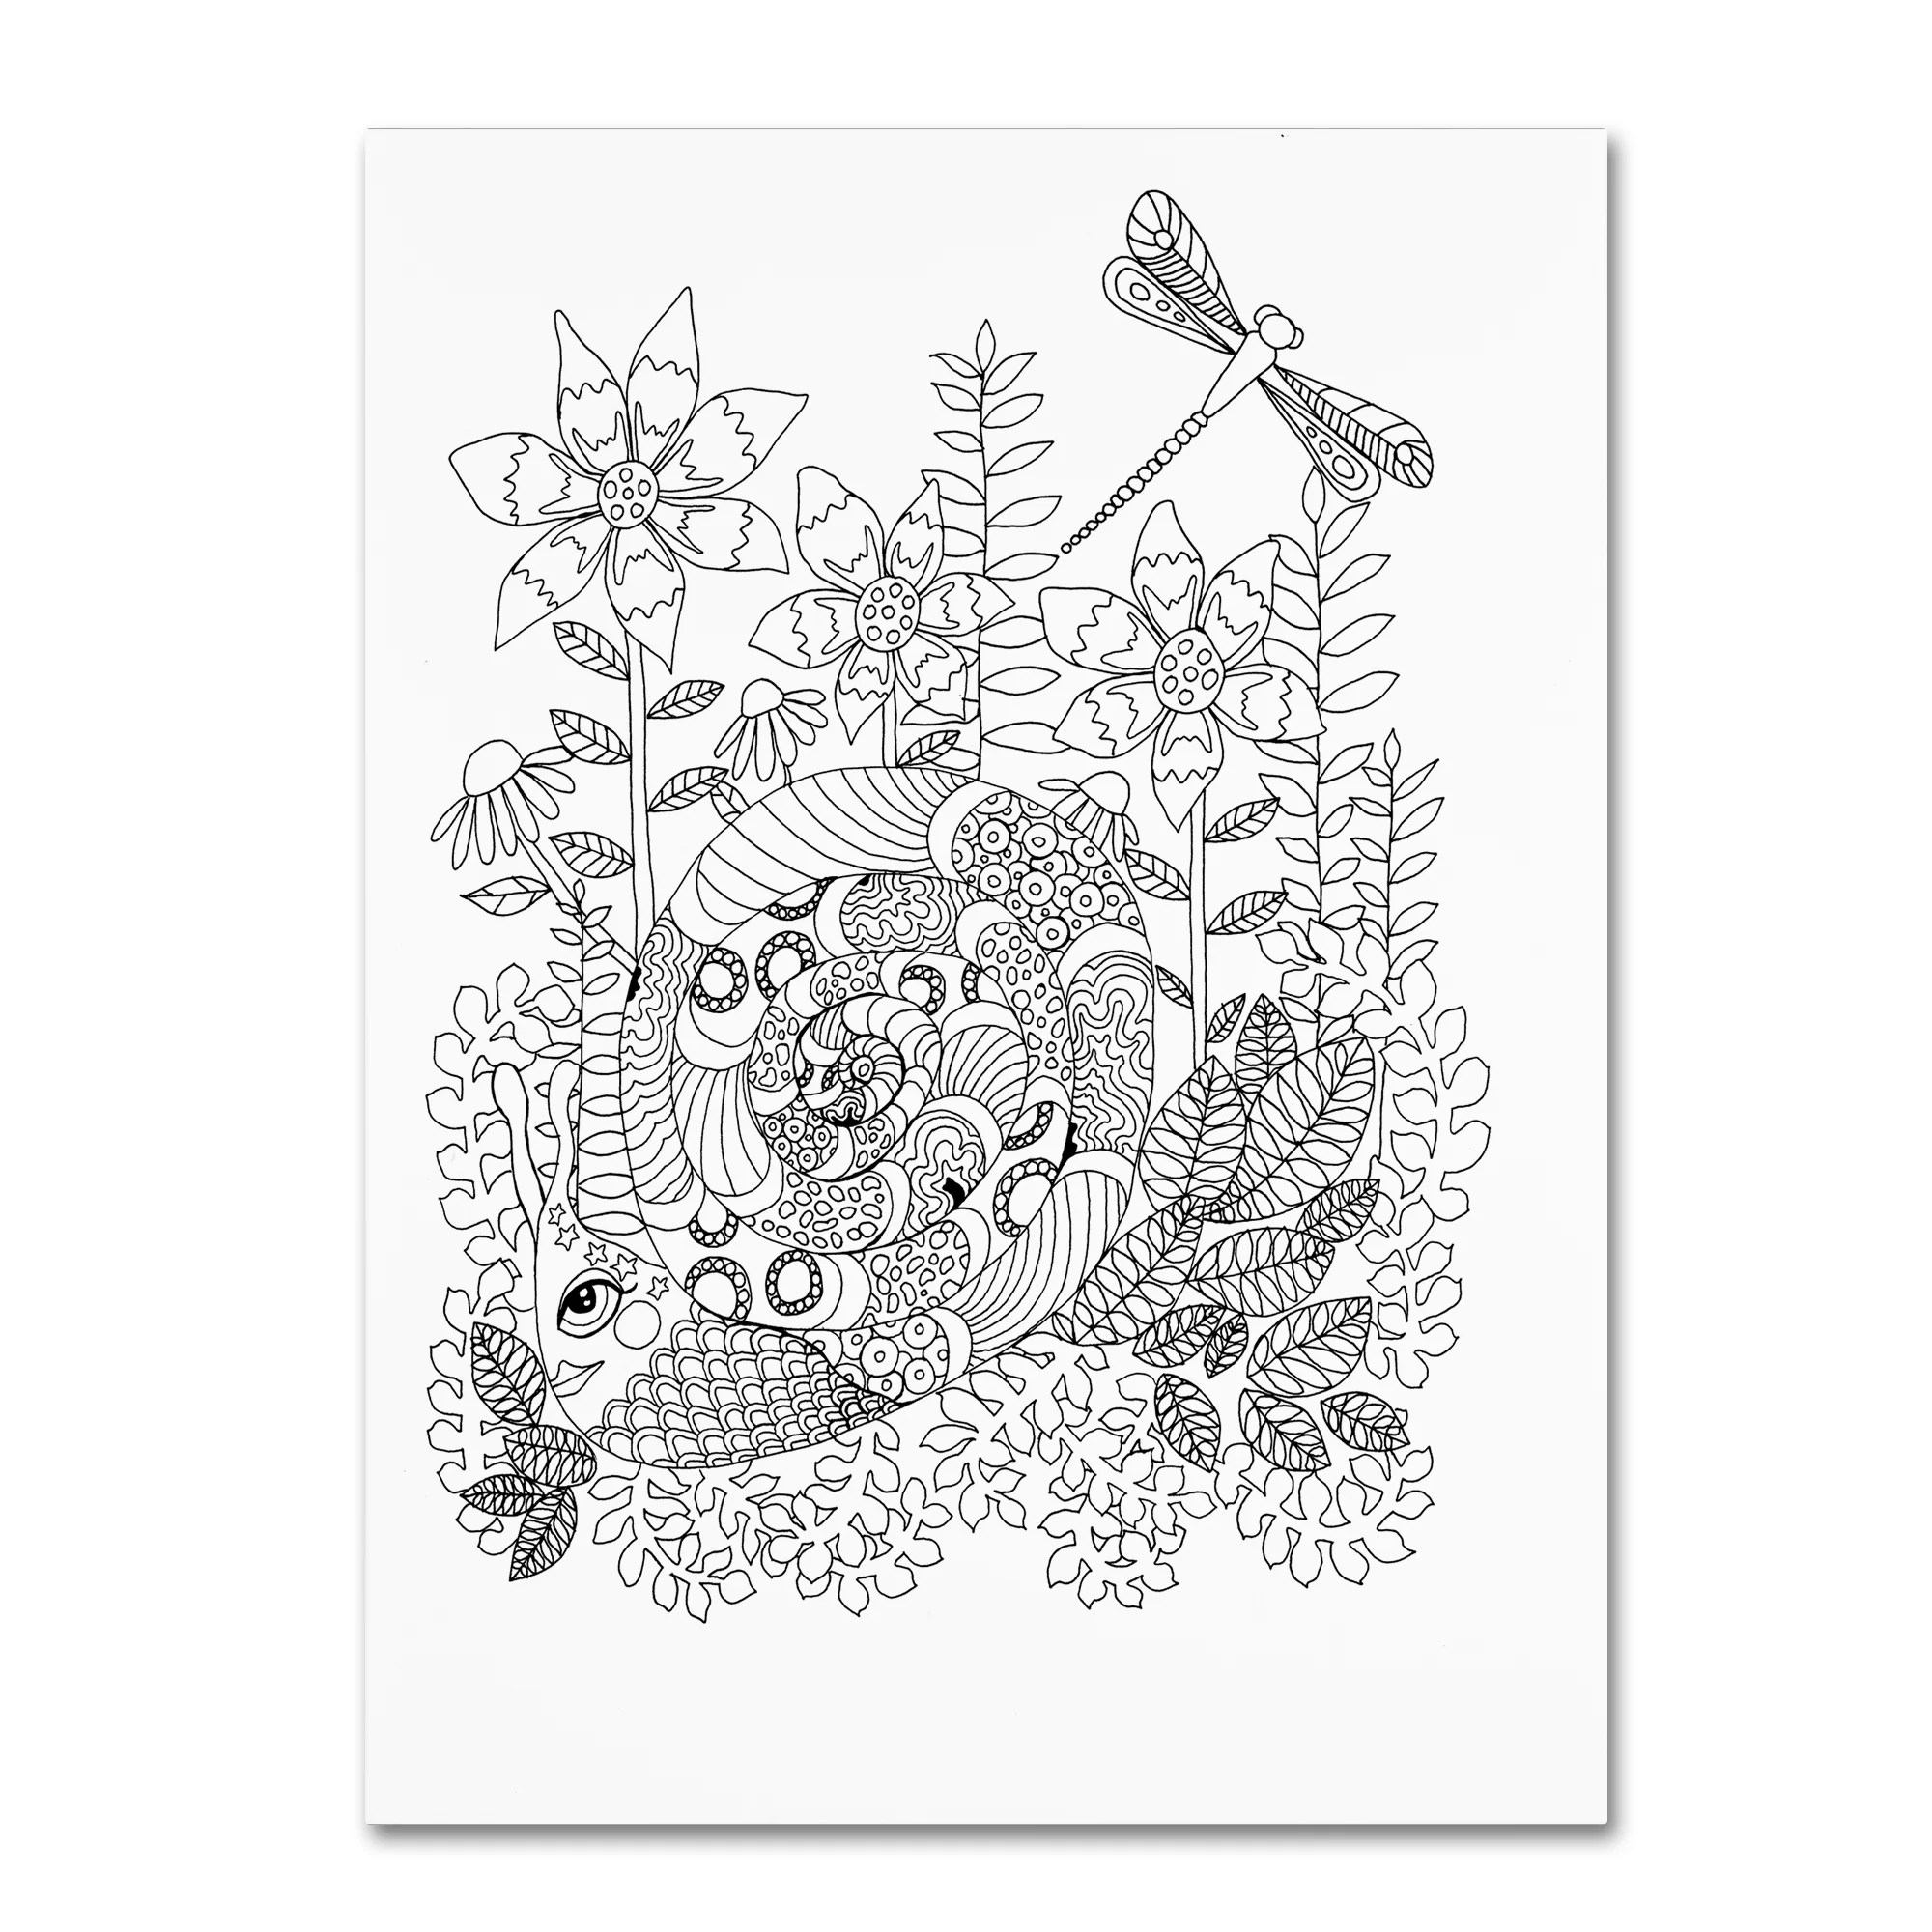 Trademark Art Fancy Snail Graphic Art Print On Wrapped